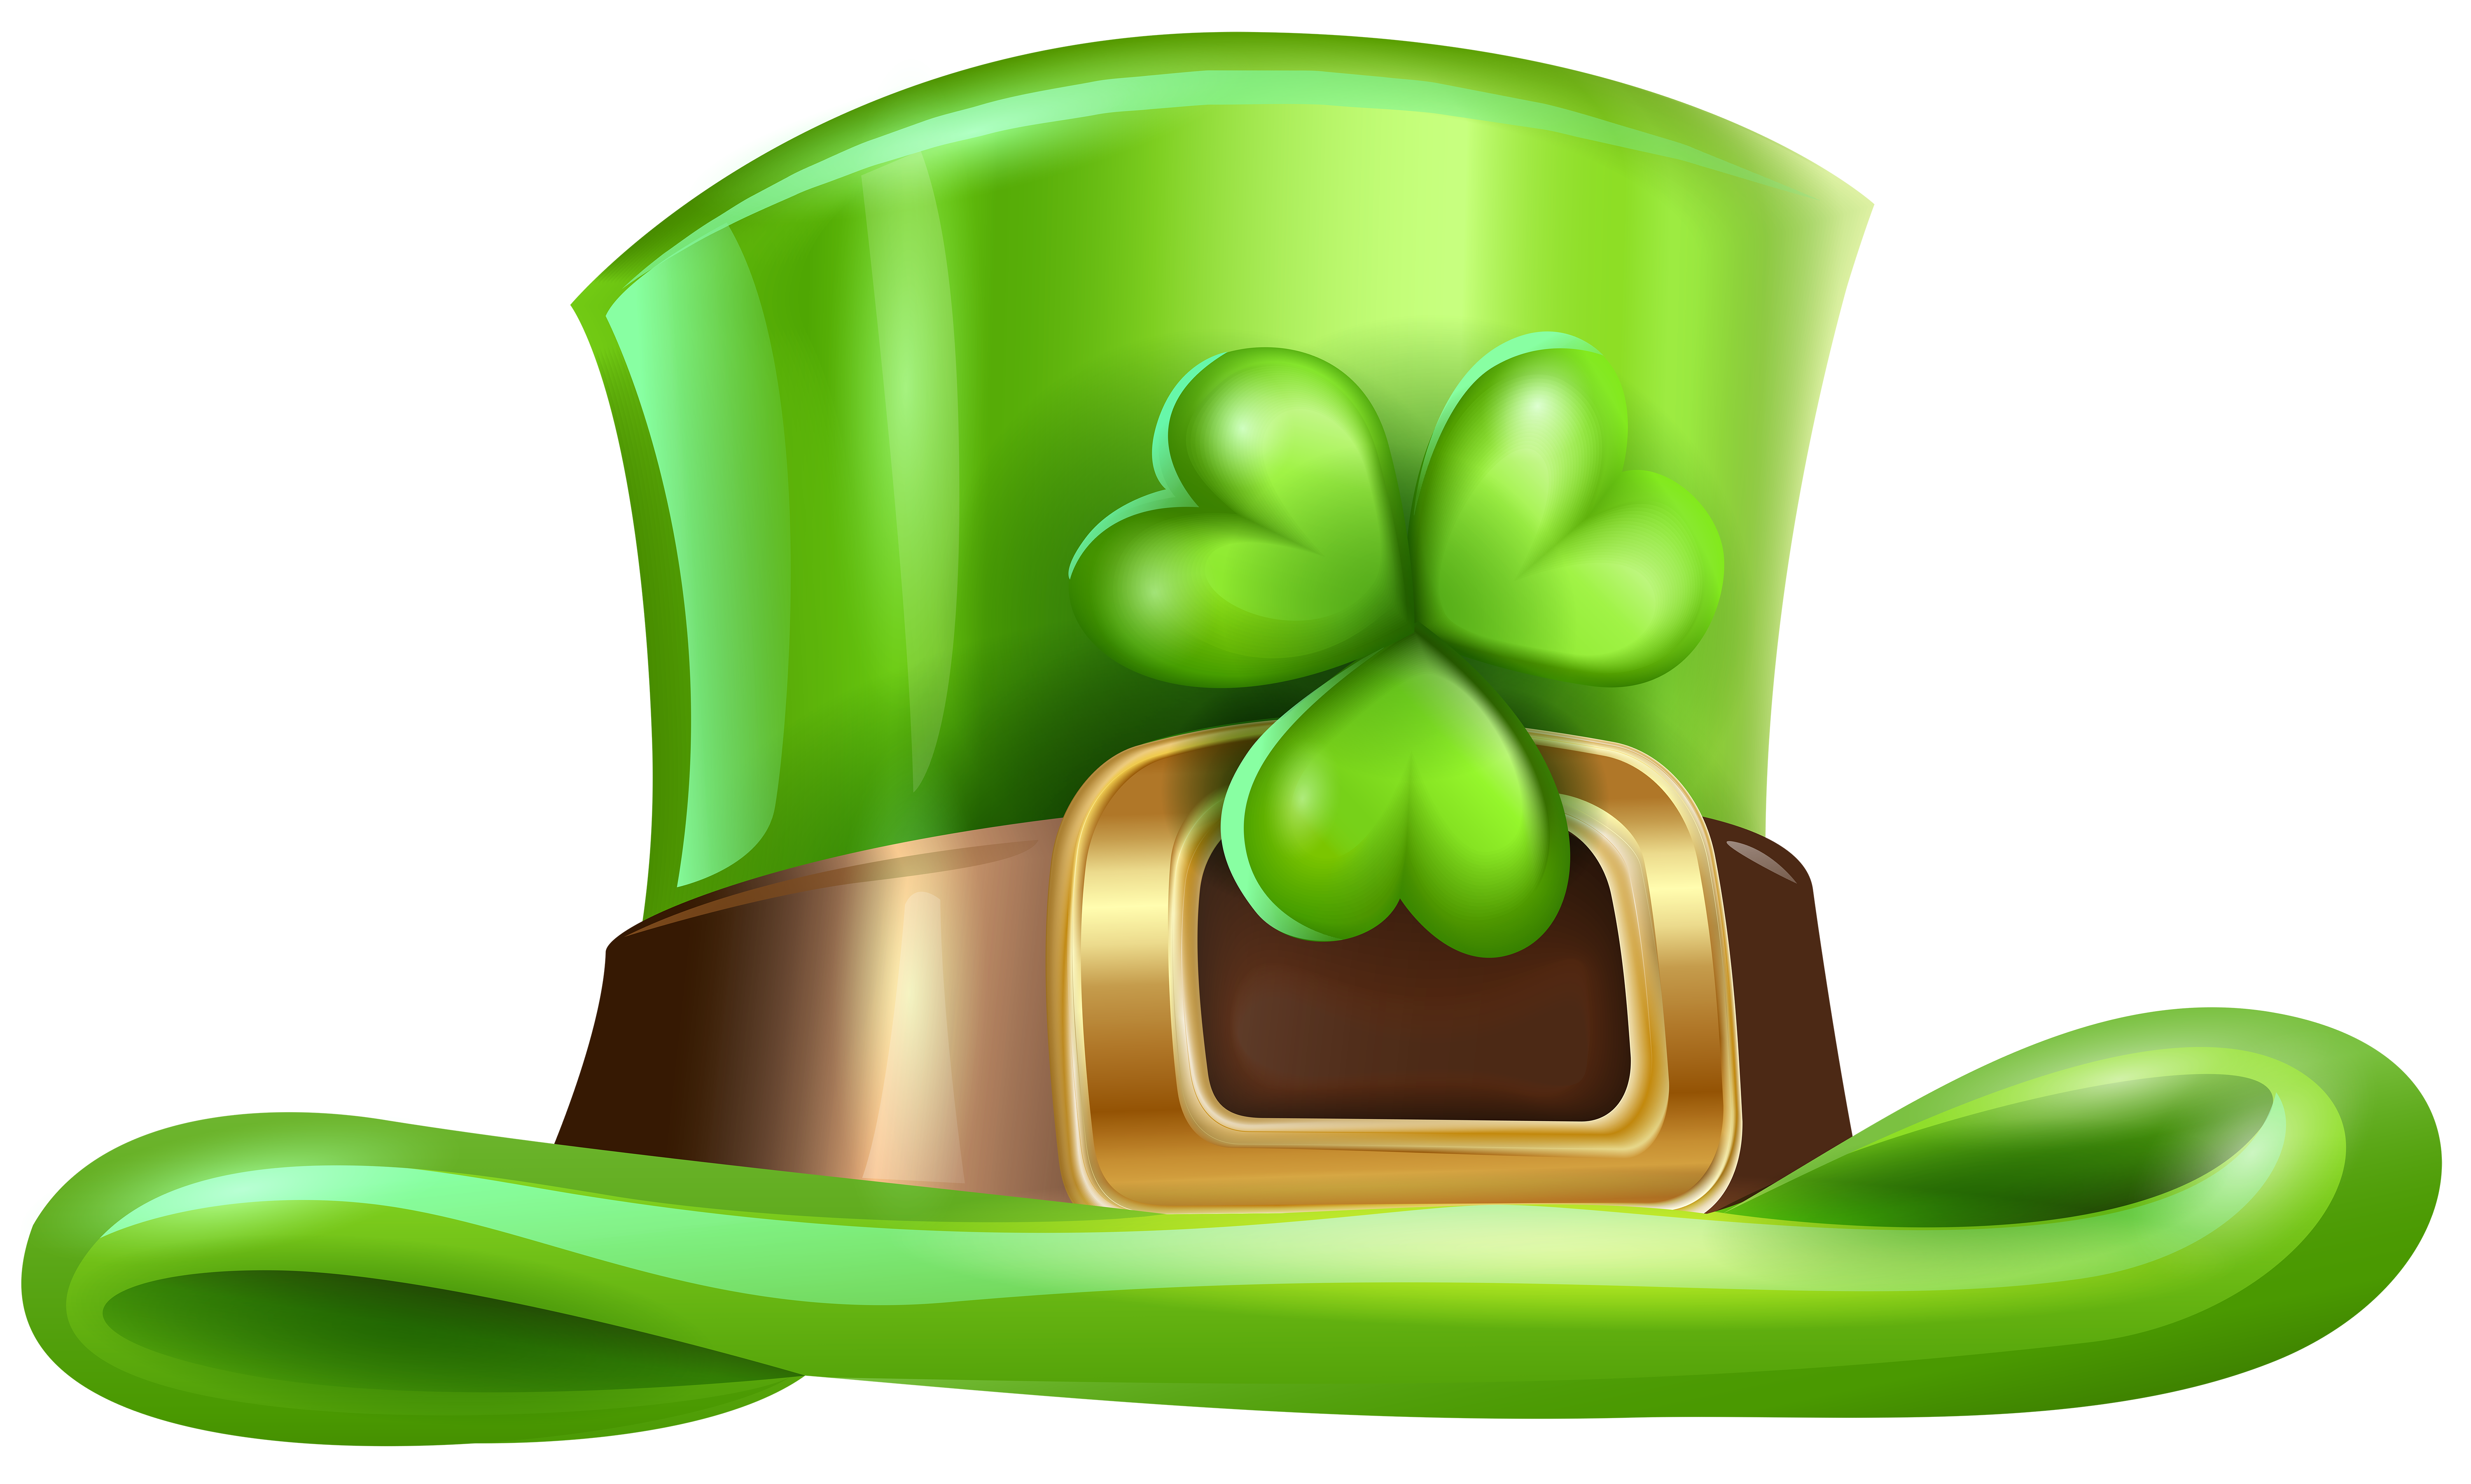 Shamrock w a face clipart transparent background banner freeuse library 21 Best St. Patrick\'s Day Clipart Images | #419735 ... banner freeuse library